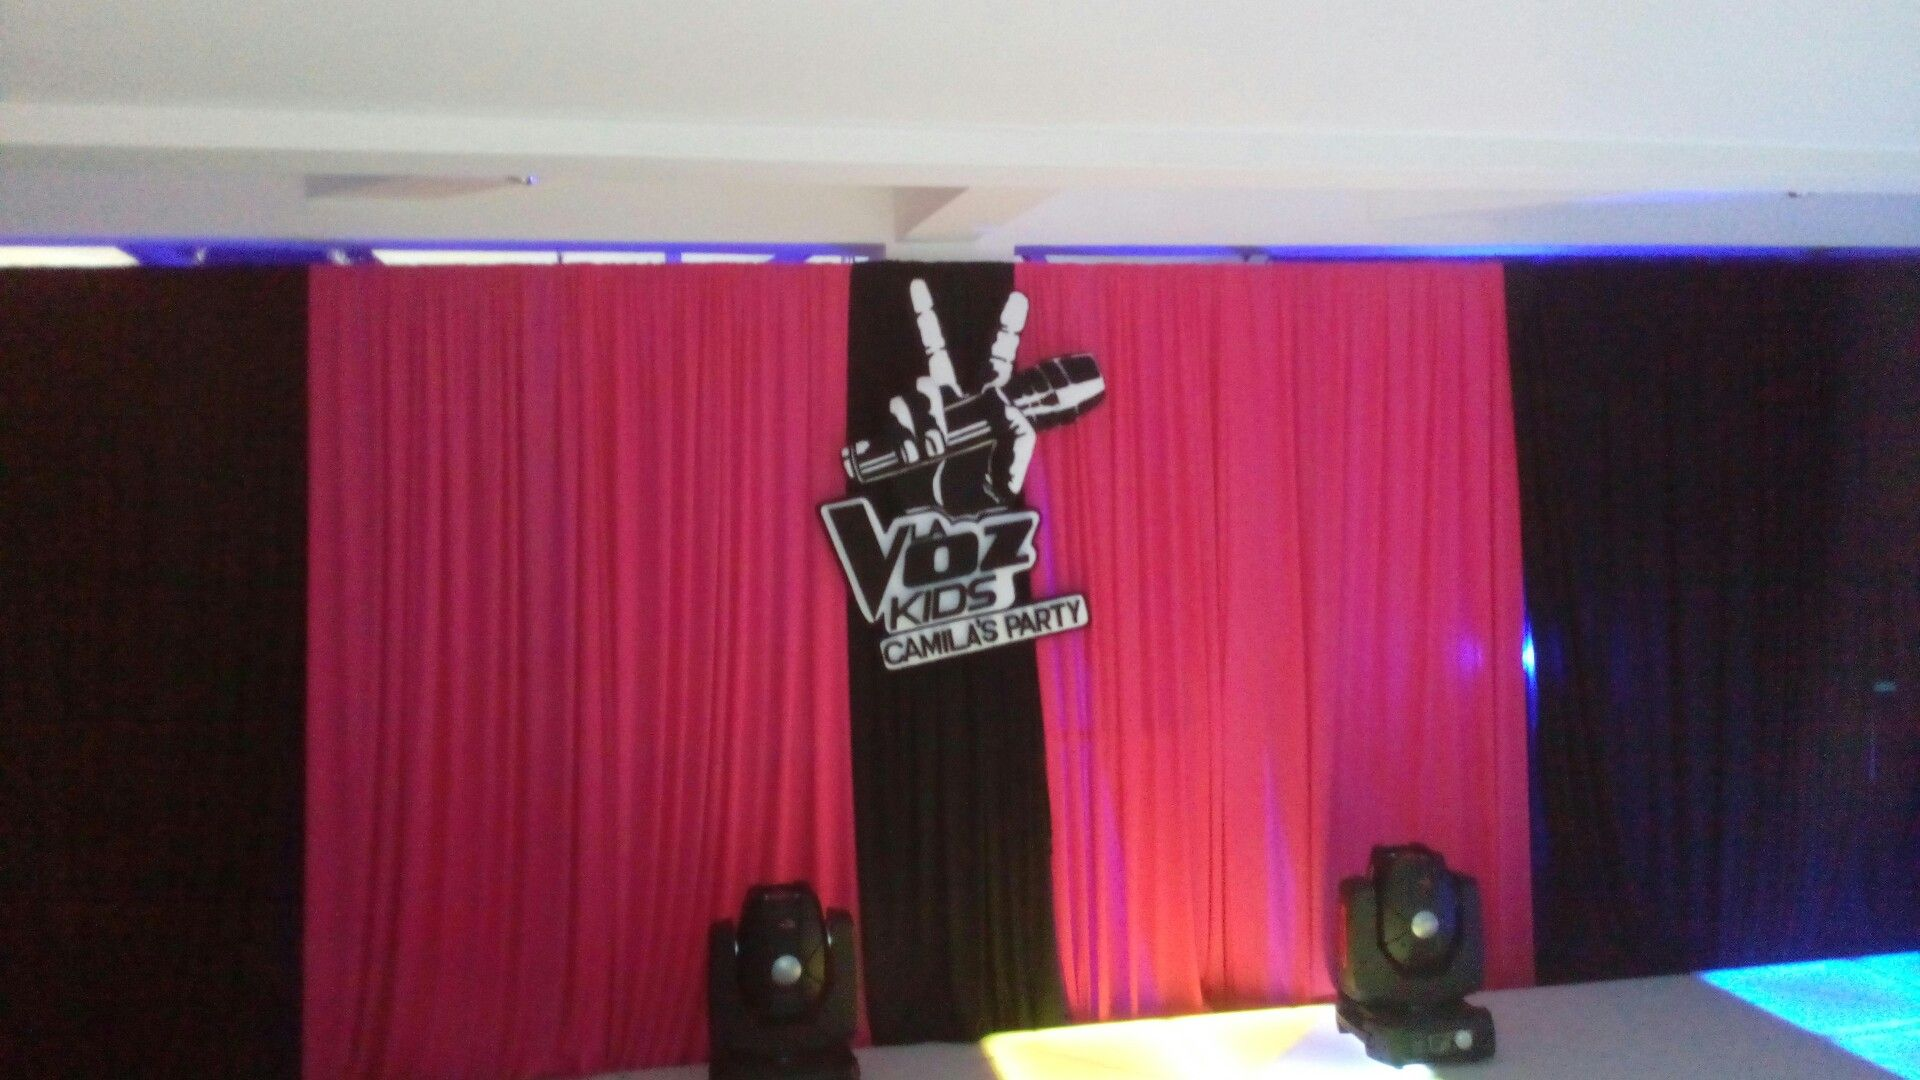 Escenario la voz Kids, Camila's party